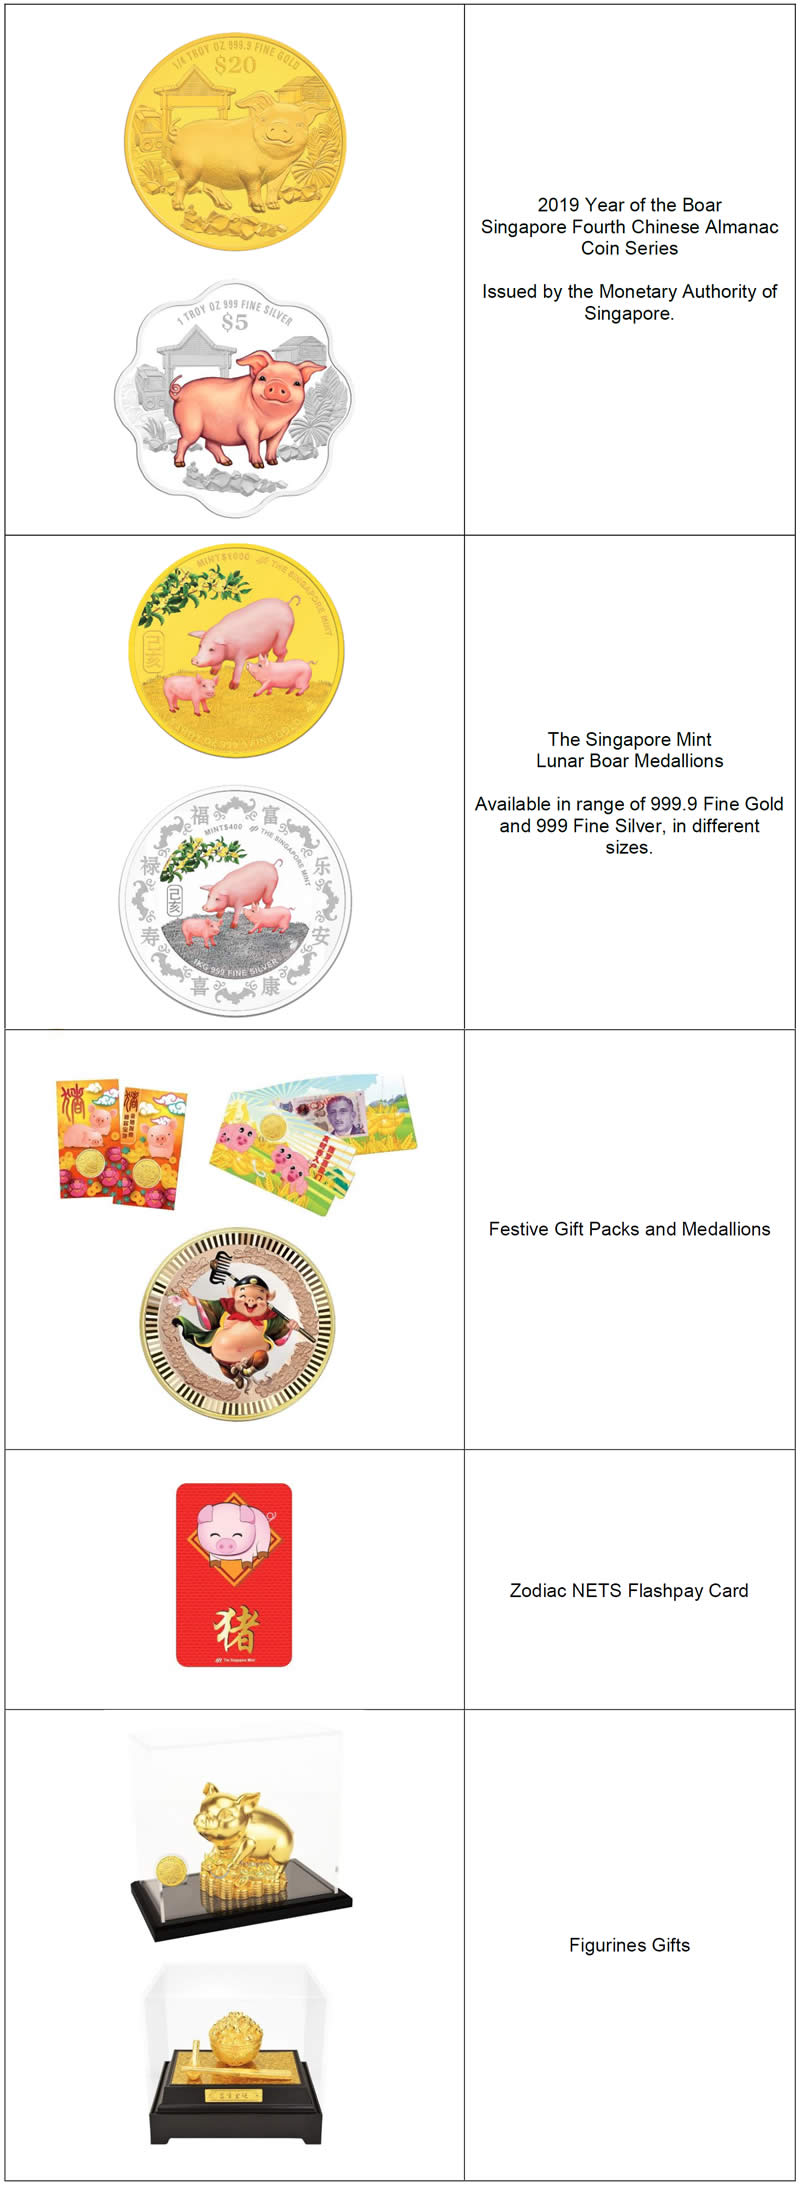 The Singapore Mint's Year of the Boar Lunar Fair from 1 – 13